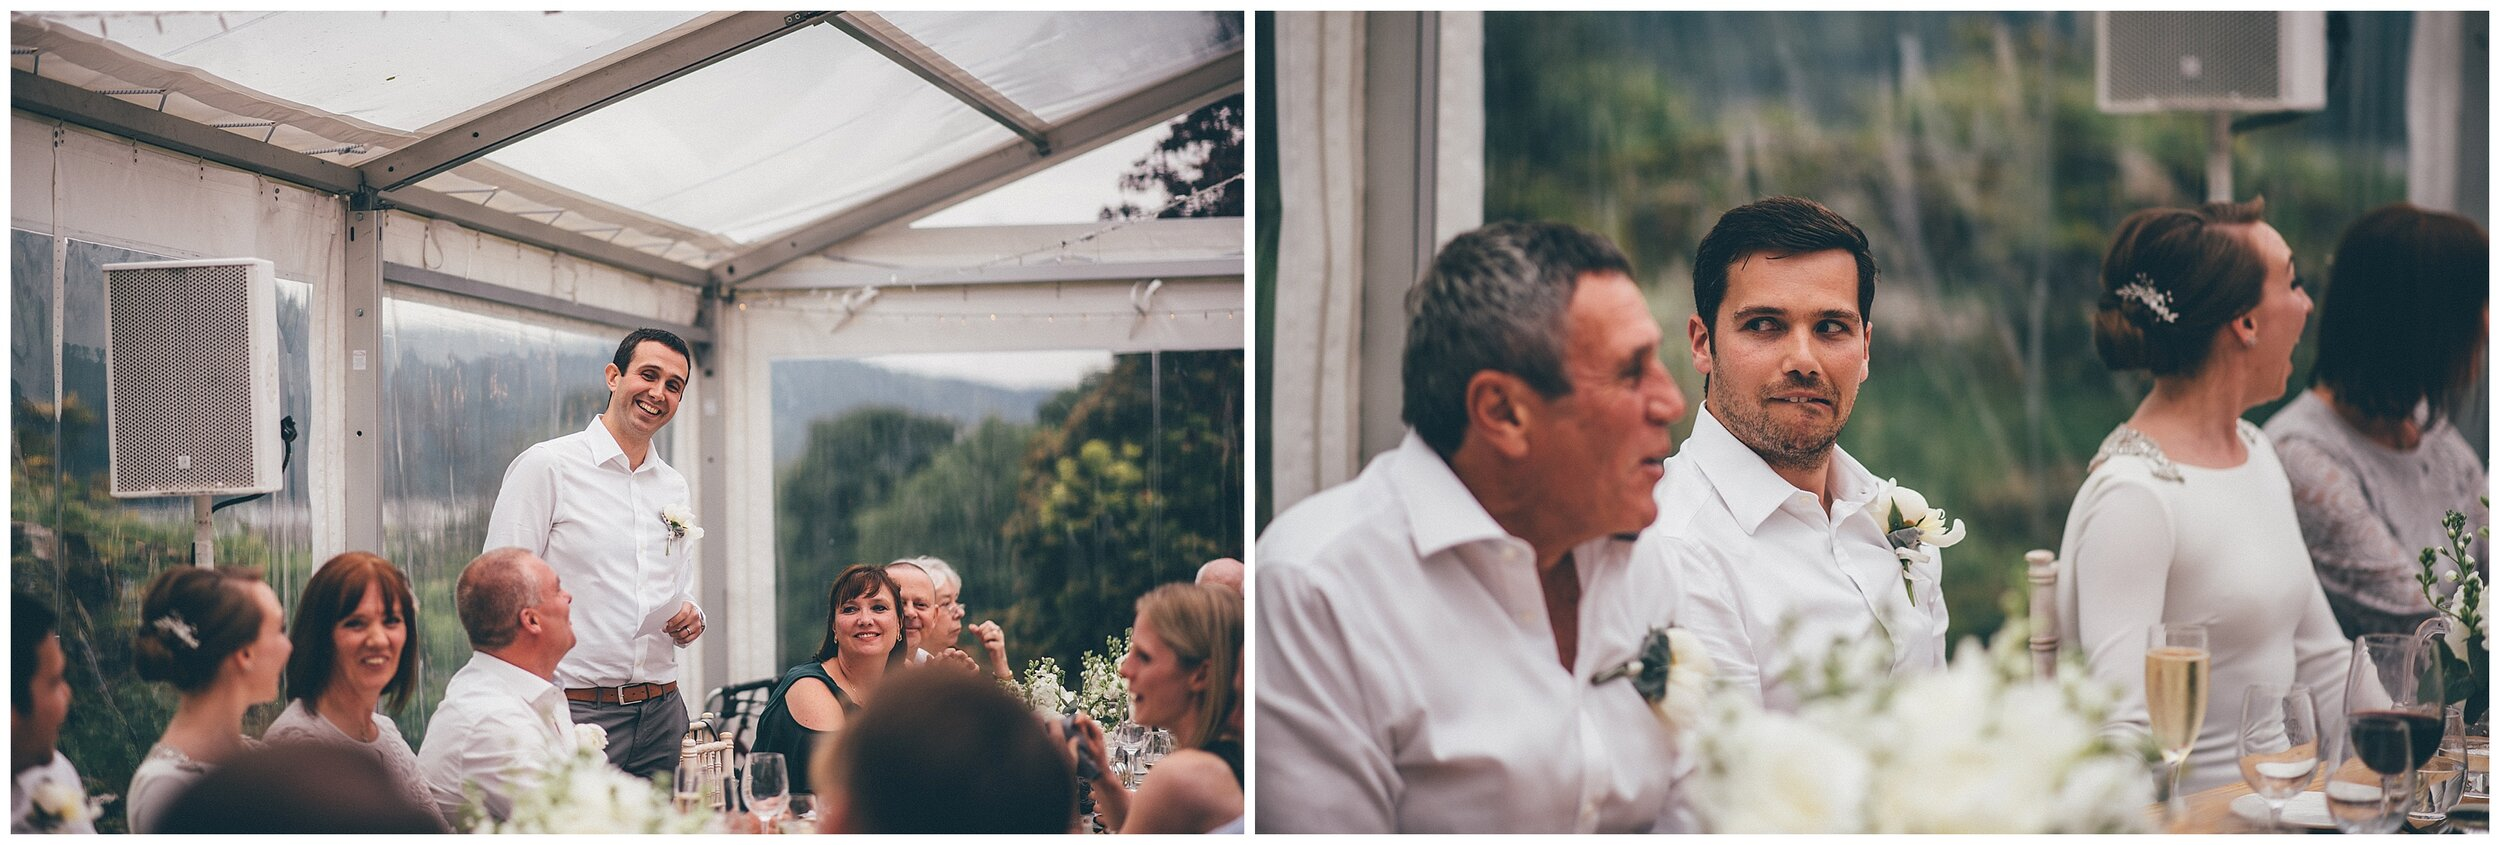 Wedding guests play a game during the speeches at Silverholme Manor, Graythwaite Estate.